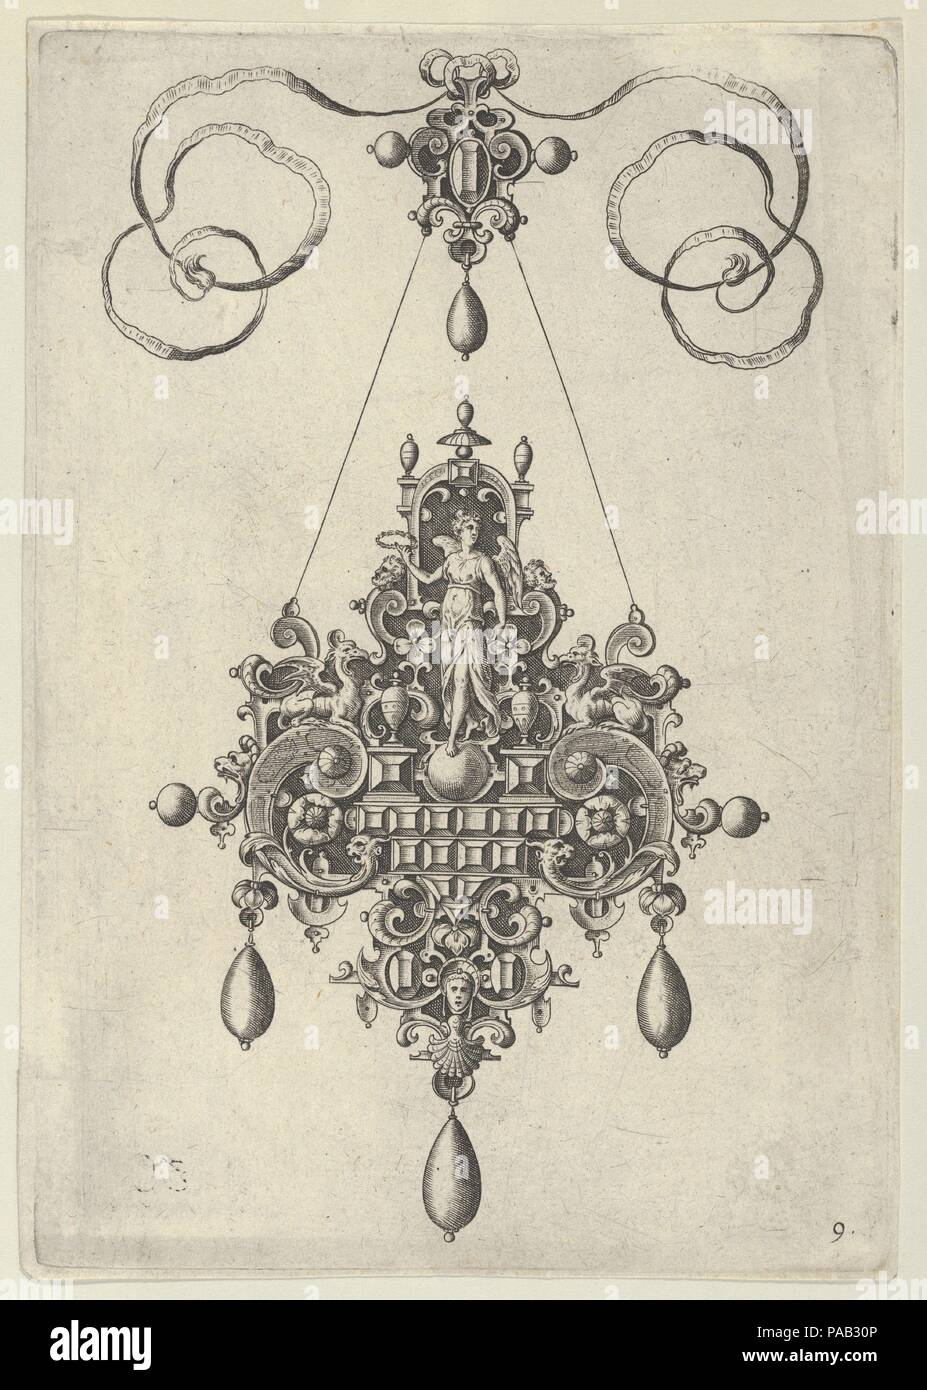 Pendant Design with Winged Victory Holding a Laurel Wreath. Artist: Jan Collaert I (Netherlandish, Antwerp ca. 1530-1581 Antwerp). Dimensions: Sheet: 6 7/8 × 4 13/16 in. (17.5 × 12.2 cm). Series/Portfolio: Designs for Pendants I. Date: after 1581.  Vertical panel with a pendant design at center, with a winged female figure standing on an orb and holding up a laurel wreath in her right hand. The figure is set in a strapwork background and is flanked by inward-facing griffins. At the bottom of the ornament is a female mask with a headdress. Plate 9 from a set of ten plates with pendant designs,  - Stock Image